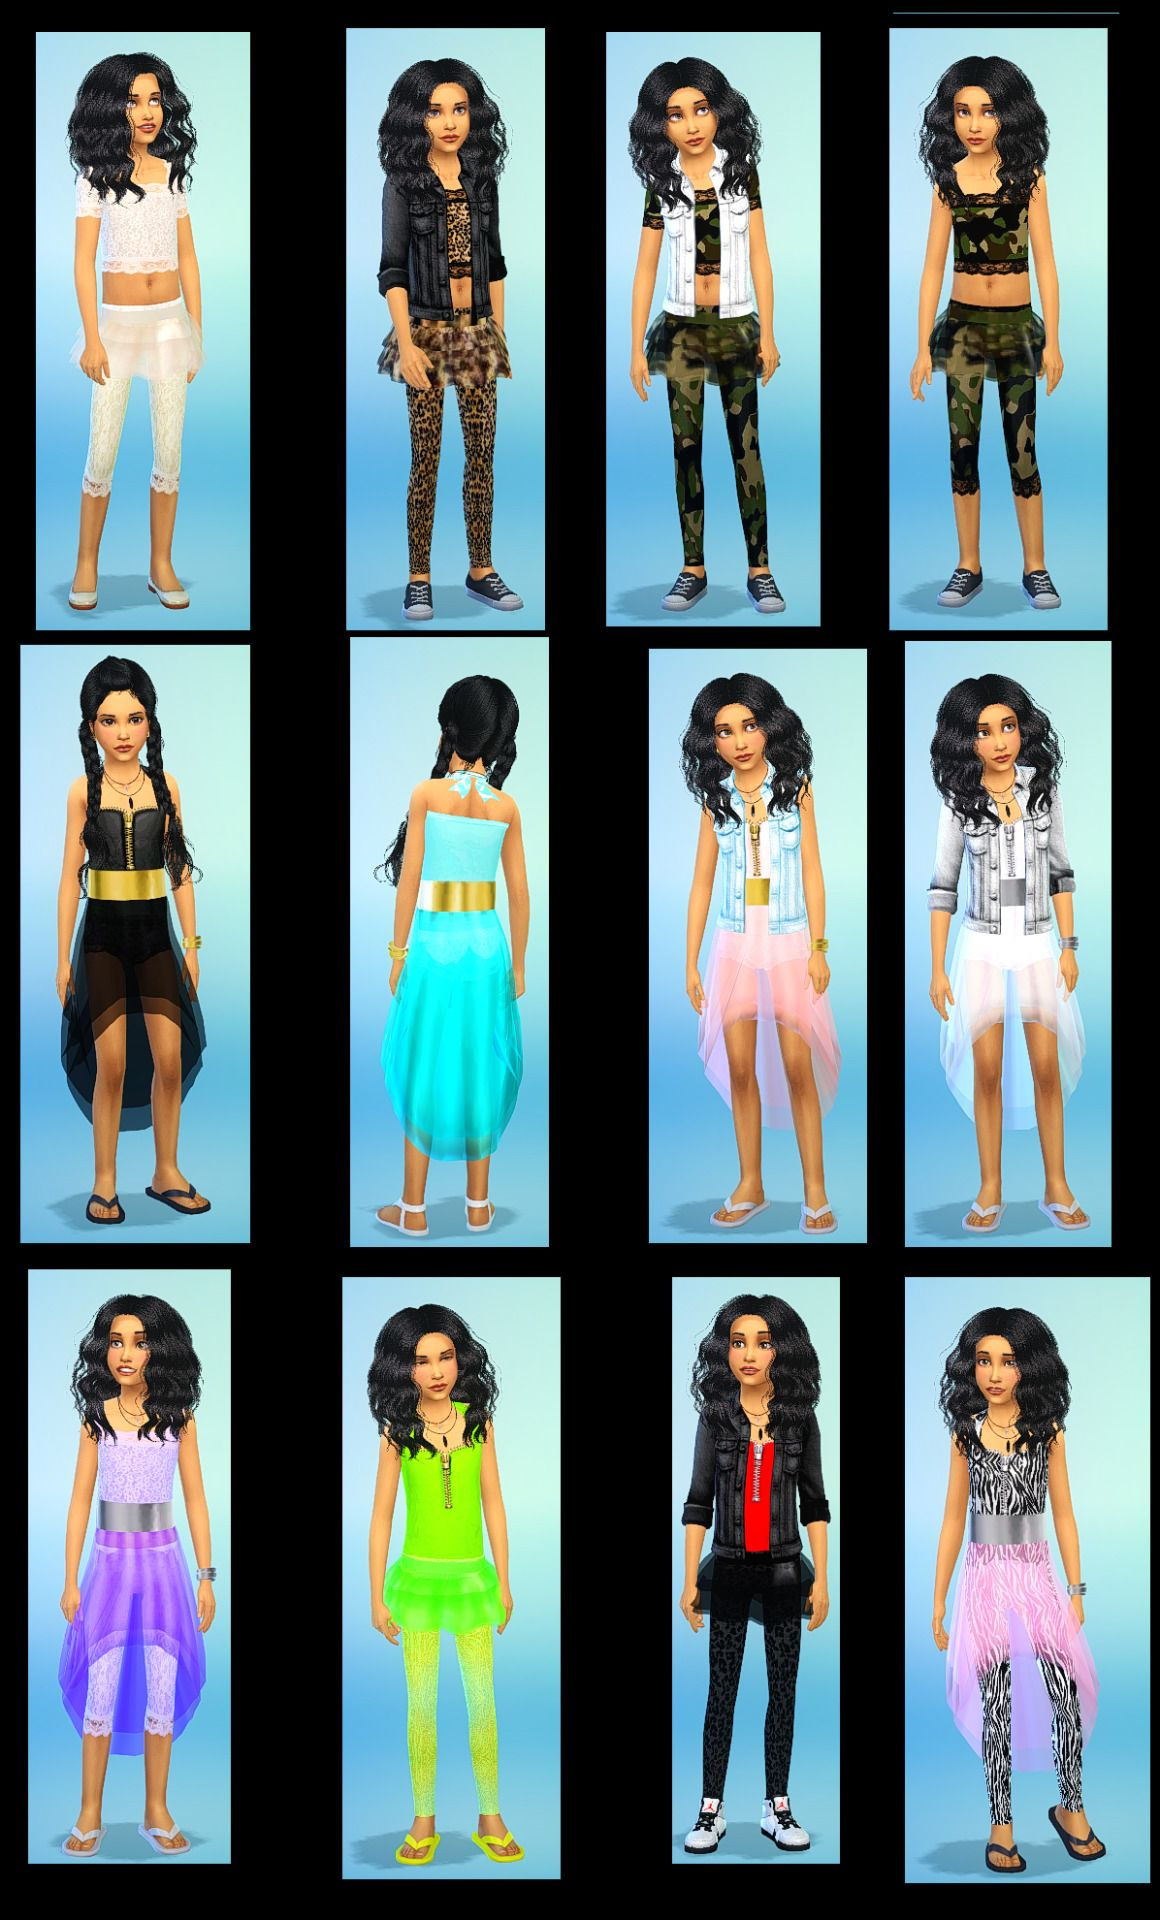 Parisiennes Sims 4 - Google Search